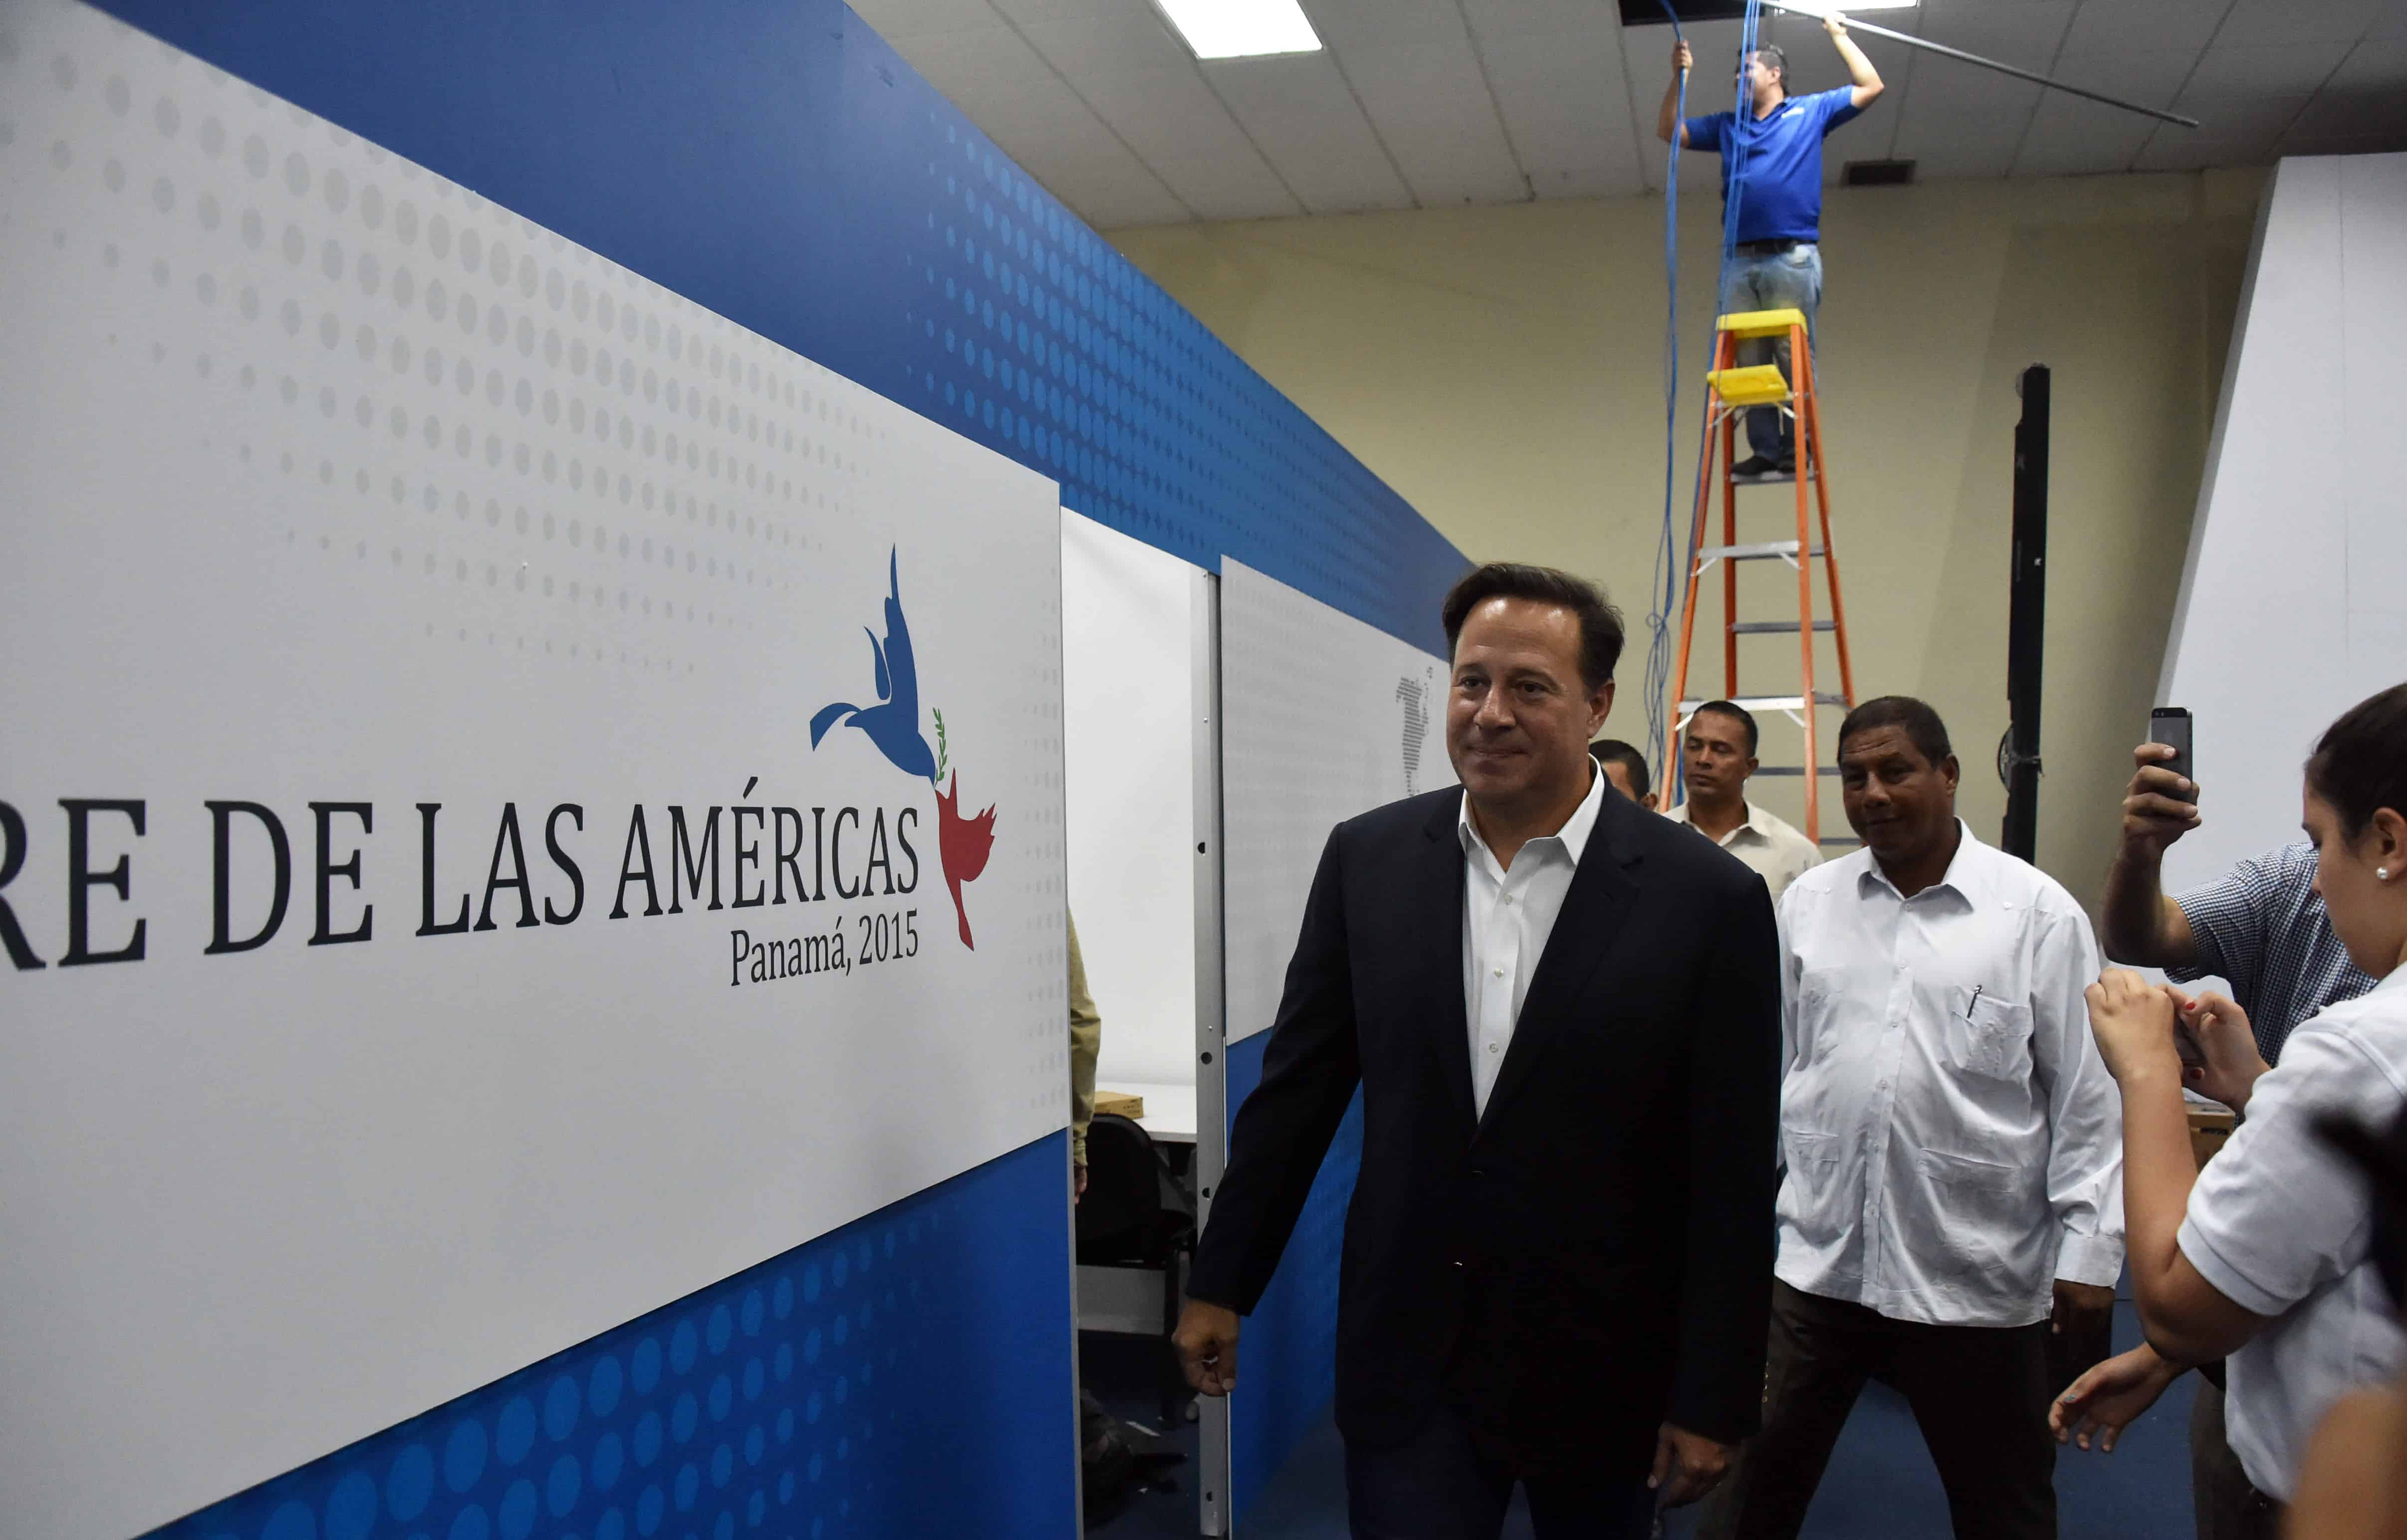 Panamanian President Juan Carlos Varela visits the Atlapa Convention Center.